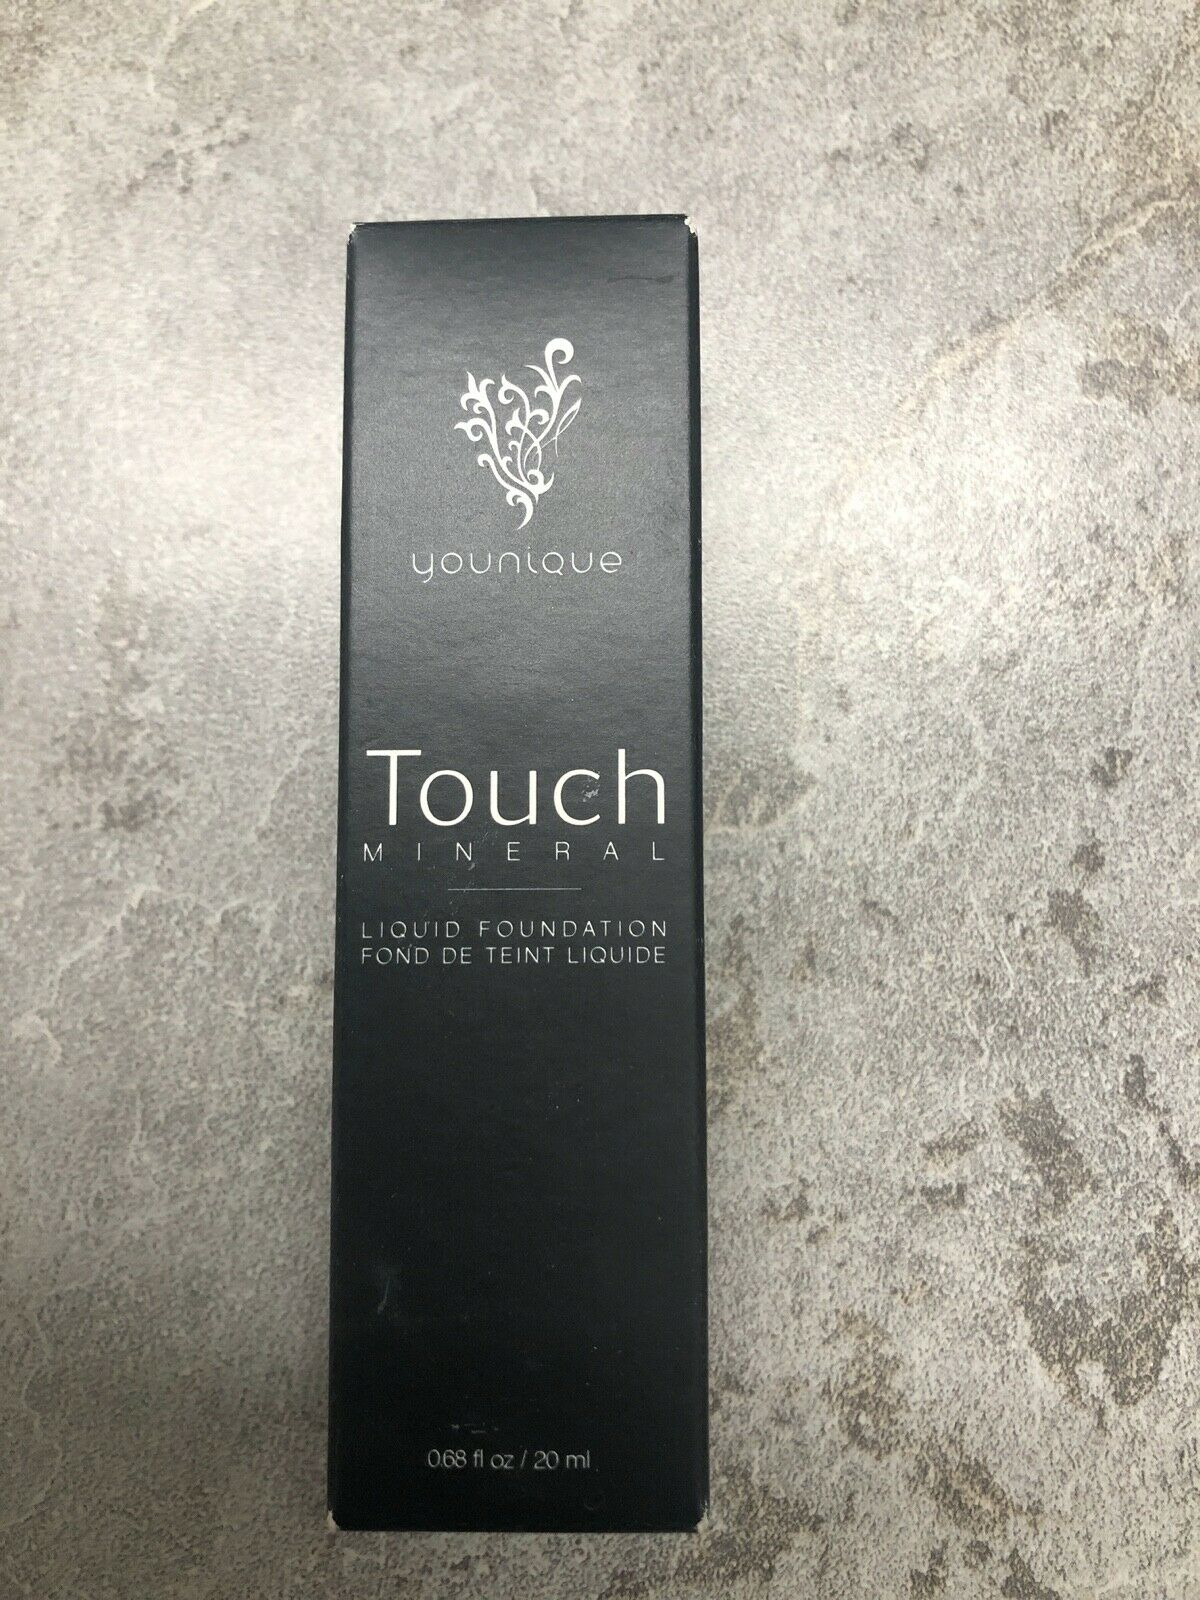 Younique Touch Mineral Liquid Foundation Eyelet For Sale Online Ebay